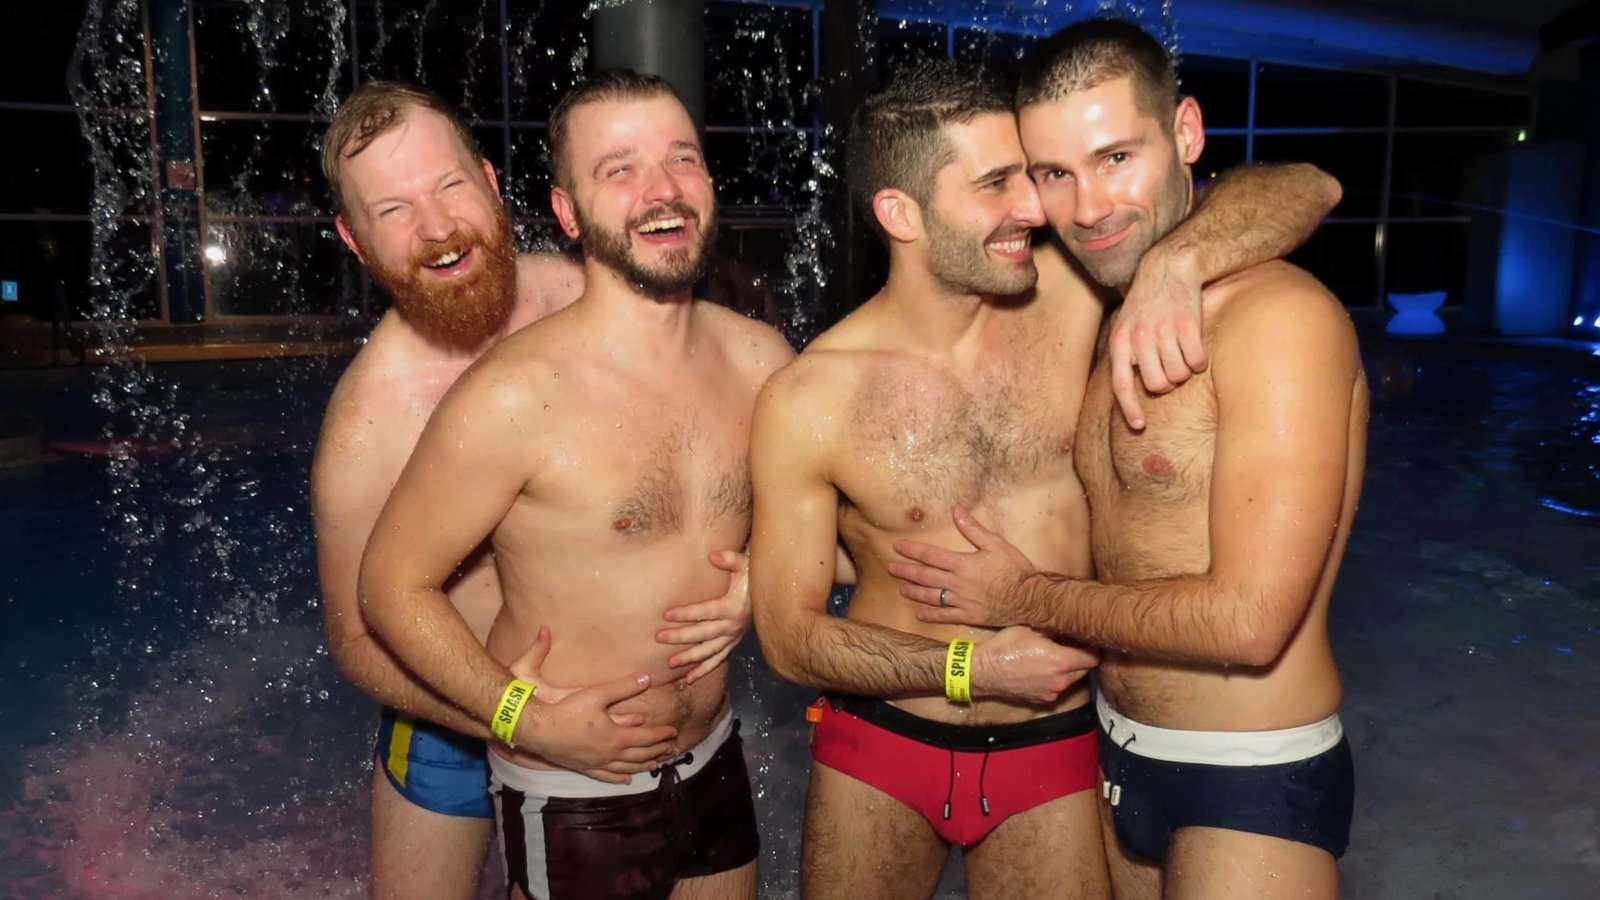 Singapore is home to some discreet gay saunas for a bit of raunchy action in the steam room